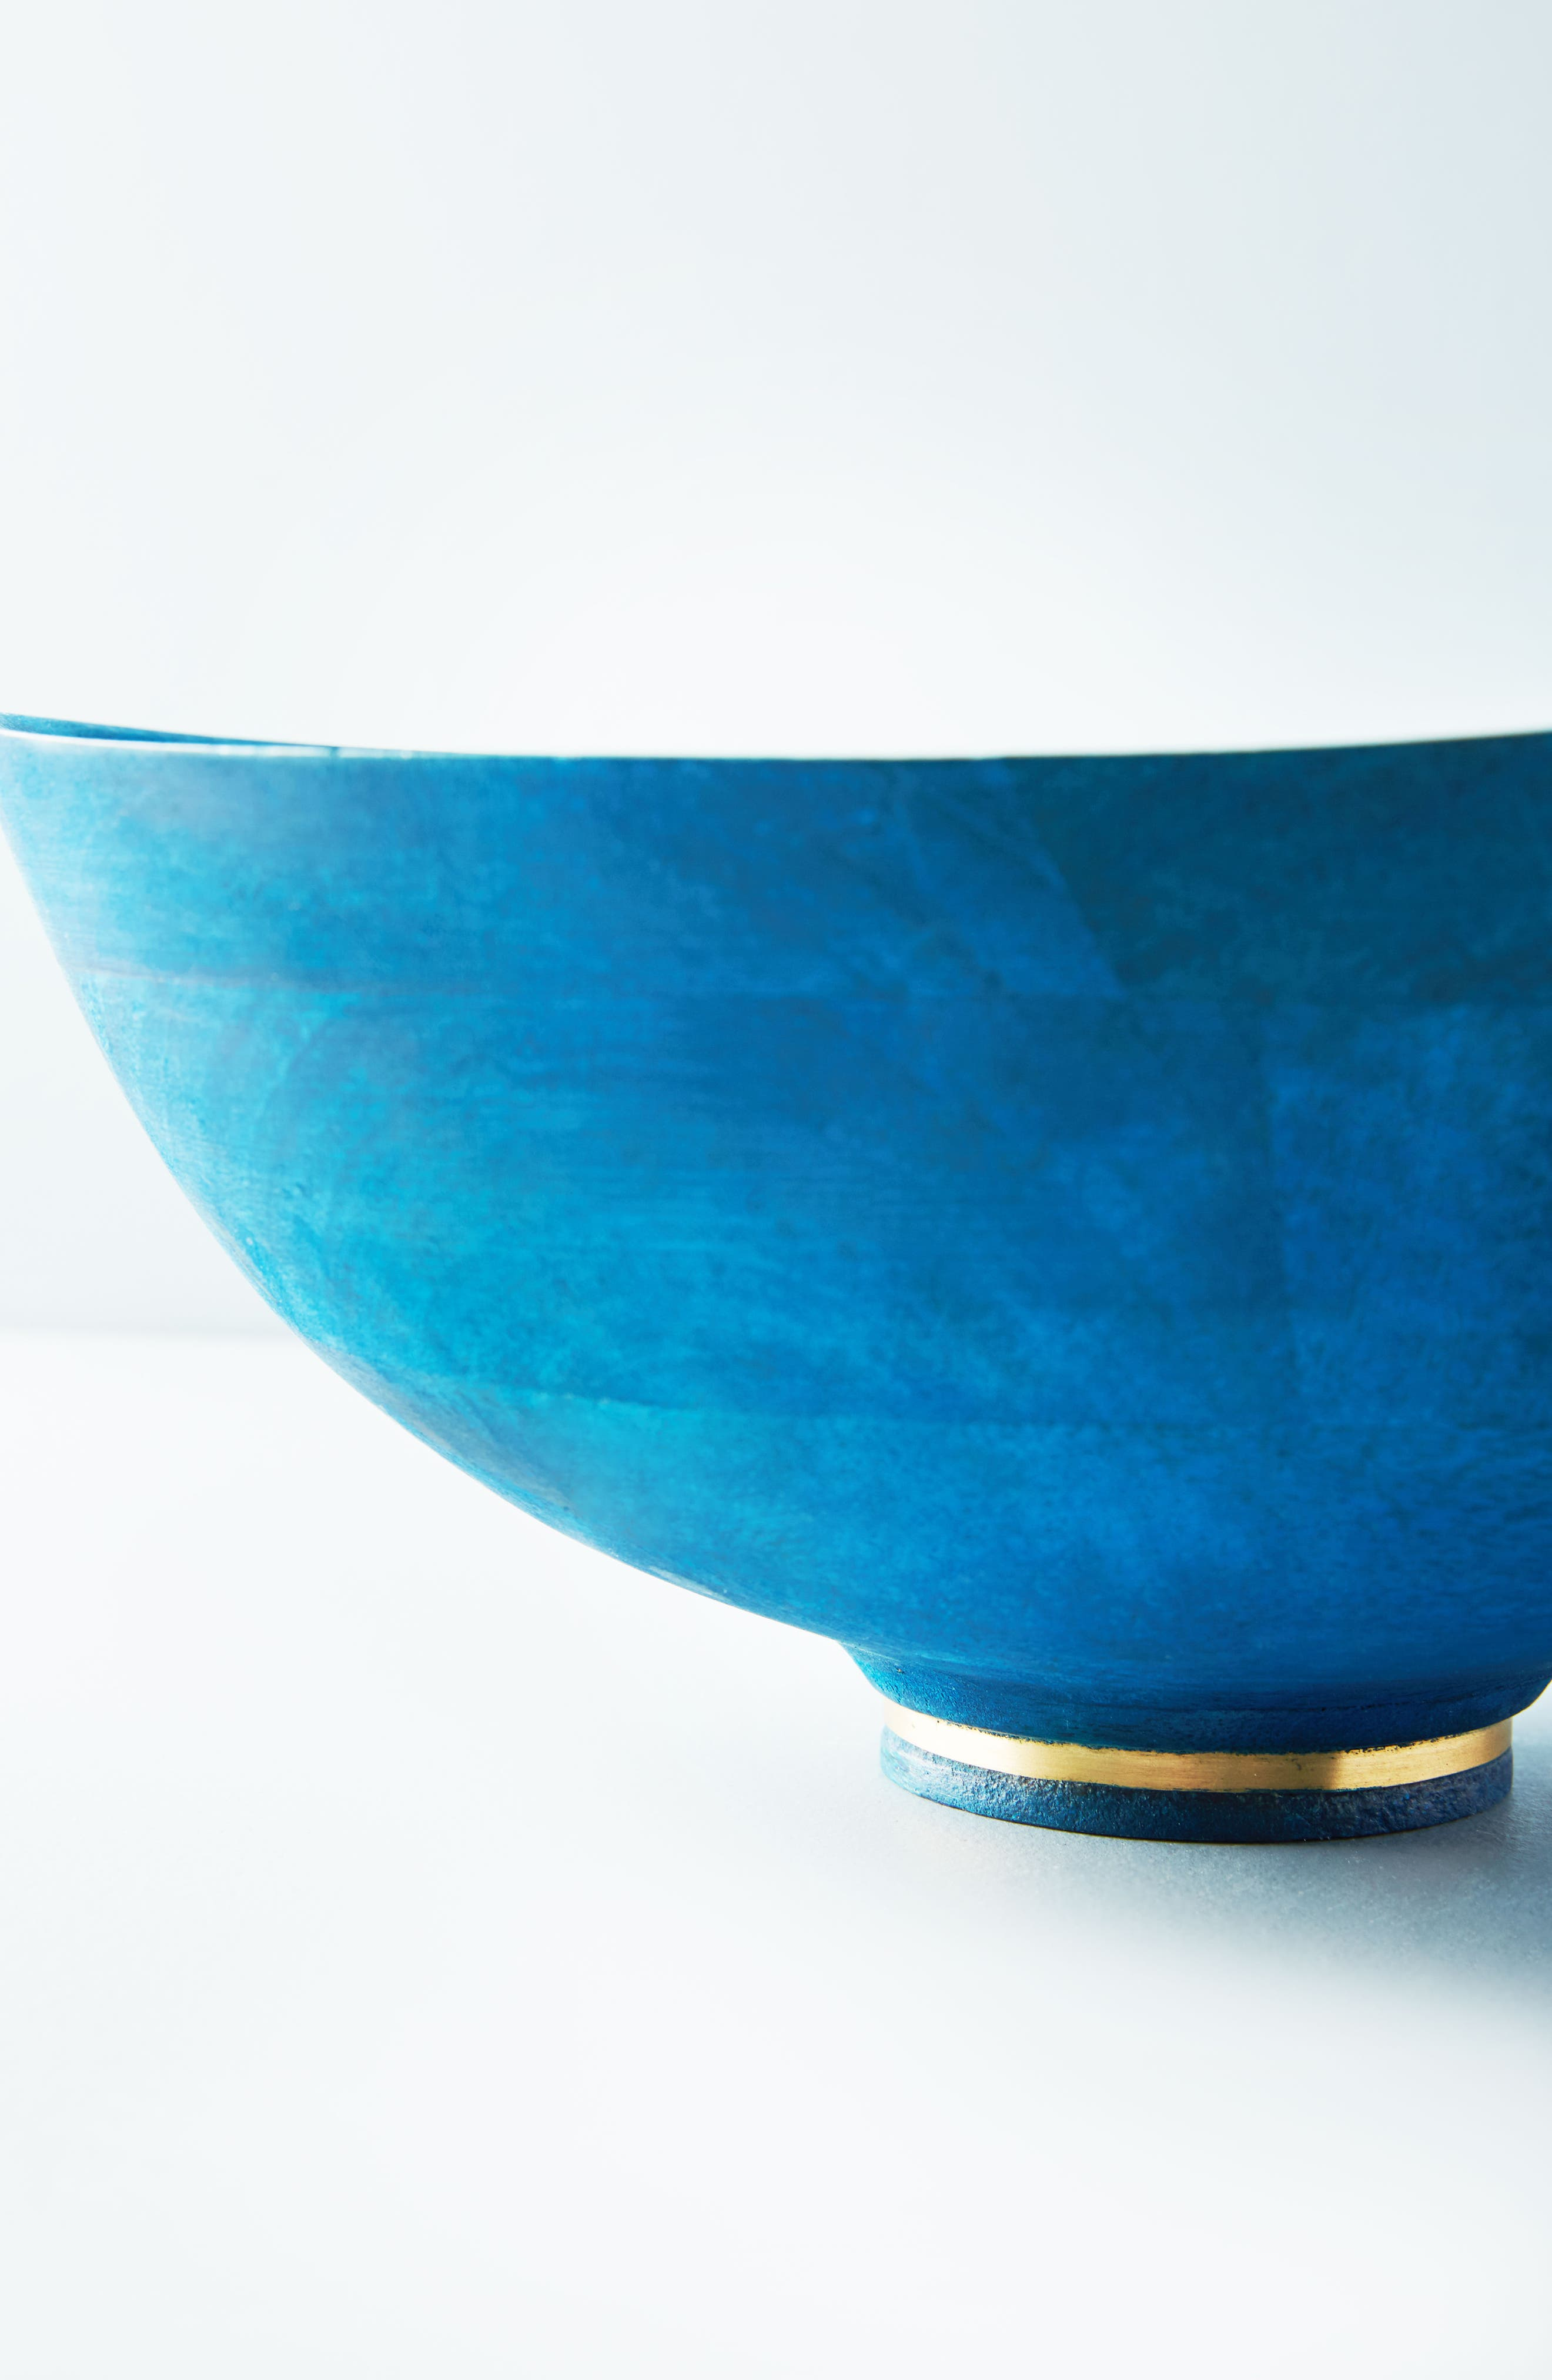 Hearthside Wood Serving Bowl,                             Alternate thumbnail 2, color,                             Sapphire